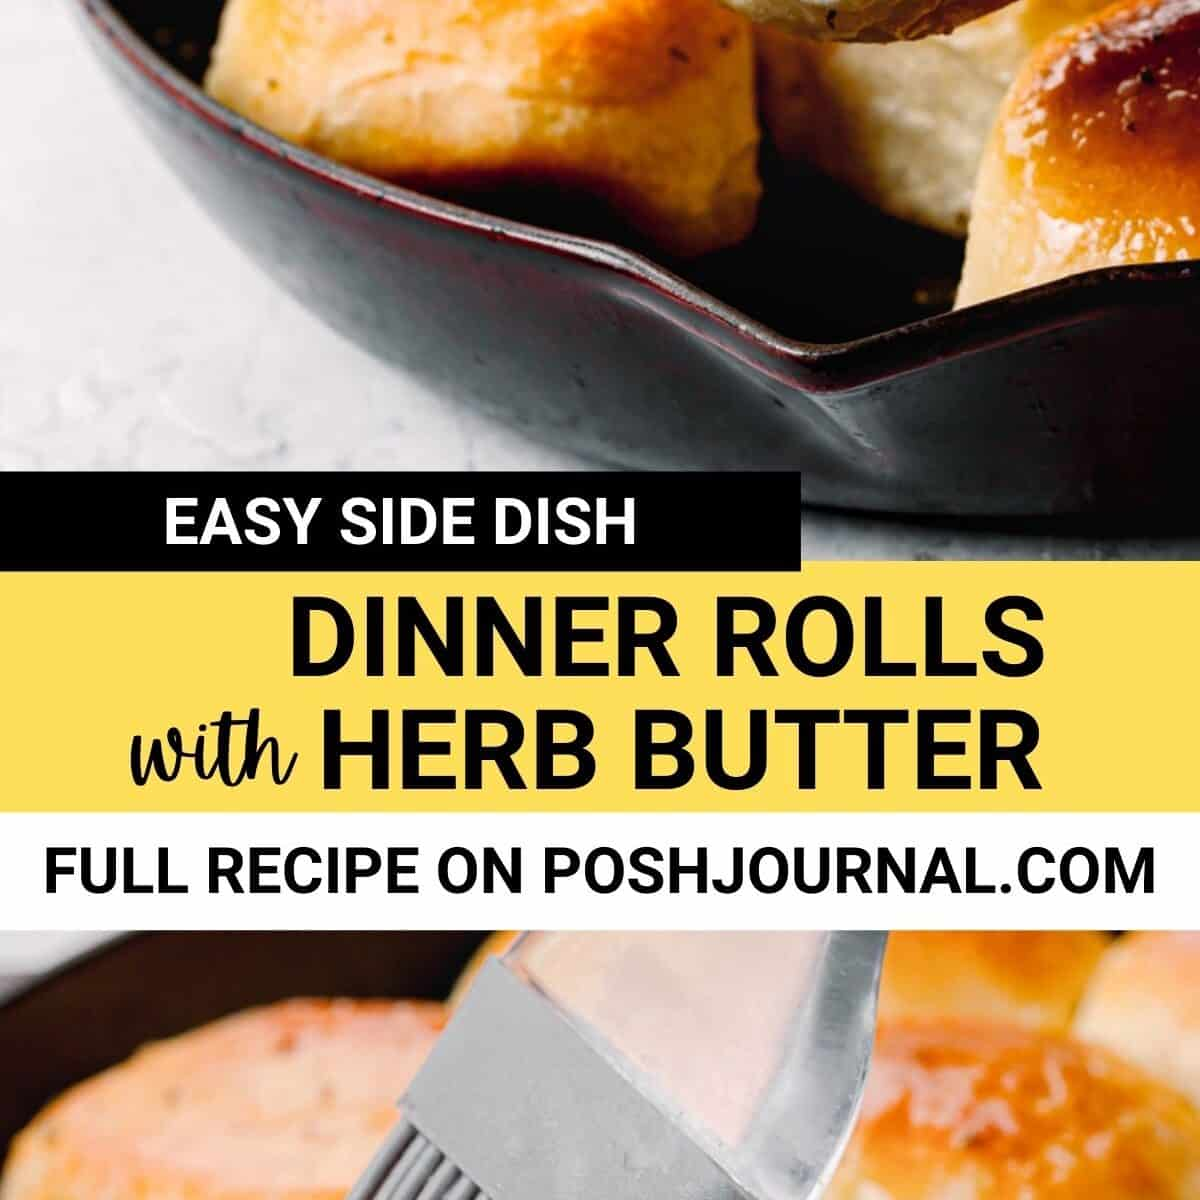 Easy Dinner Rolls with Herb Butter